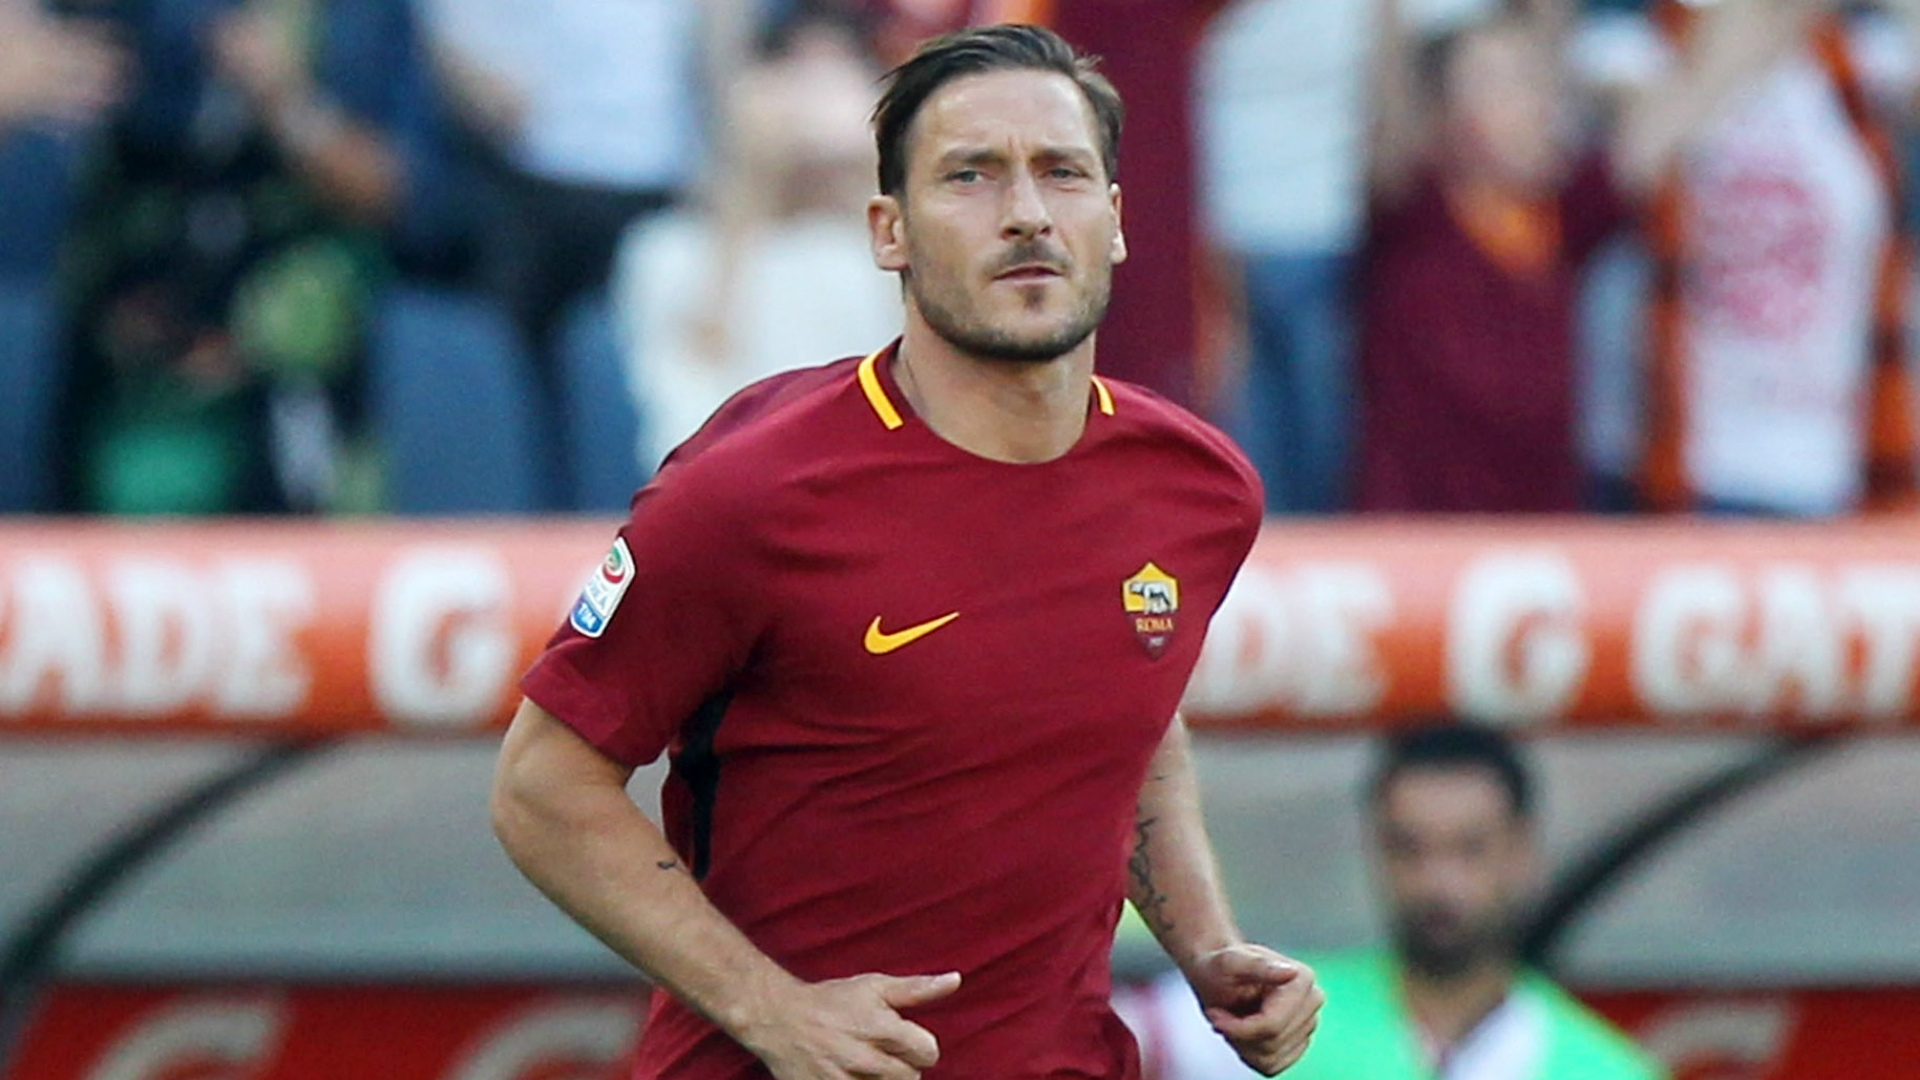 Francesco Totti may have played his final game for Roma